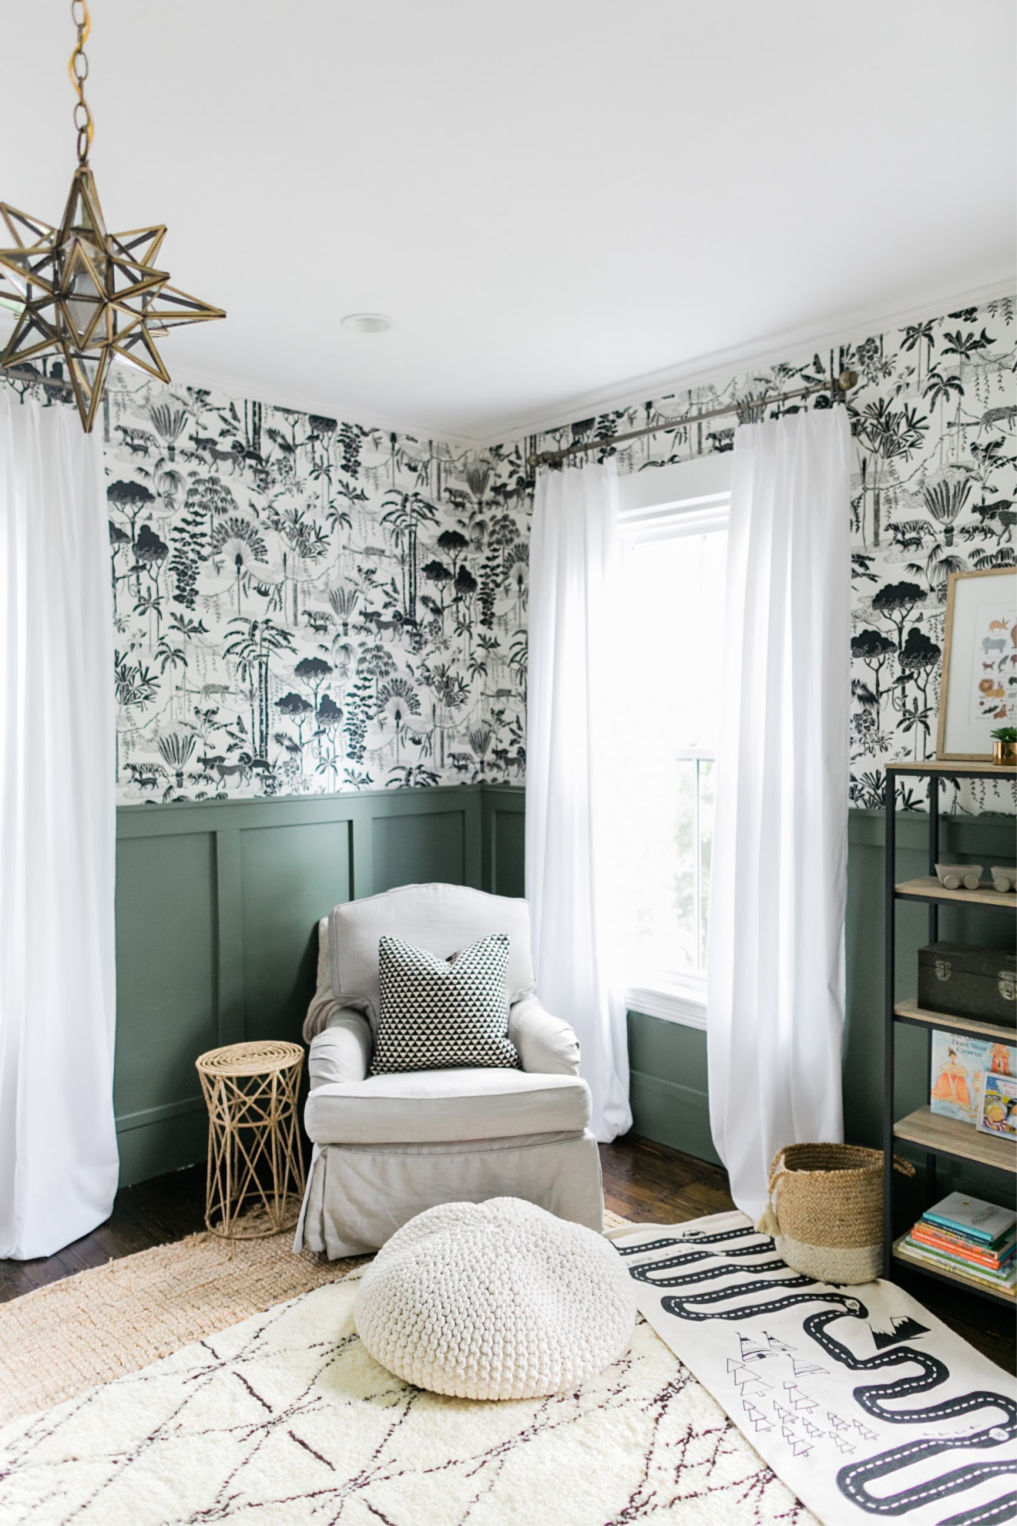 Very cool black and white jungle wallpaper in this boys bedroom kellyelko.com #wallpaper #boysroom #kidsroom #bedroom